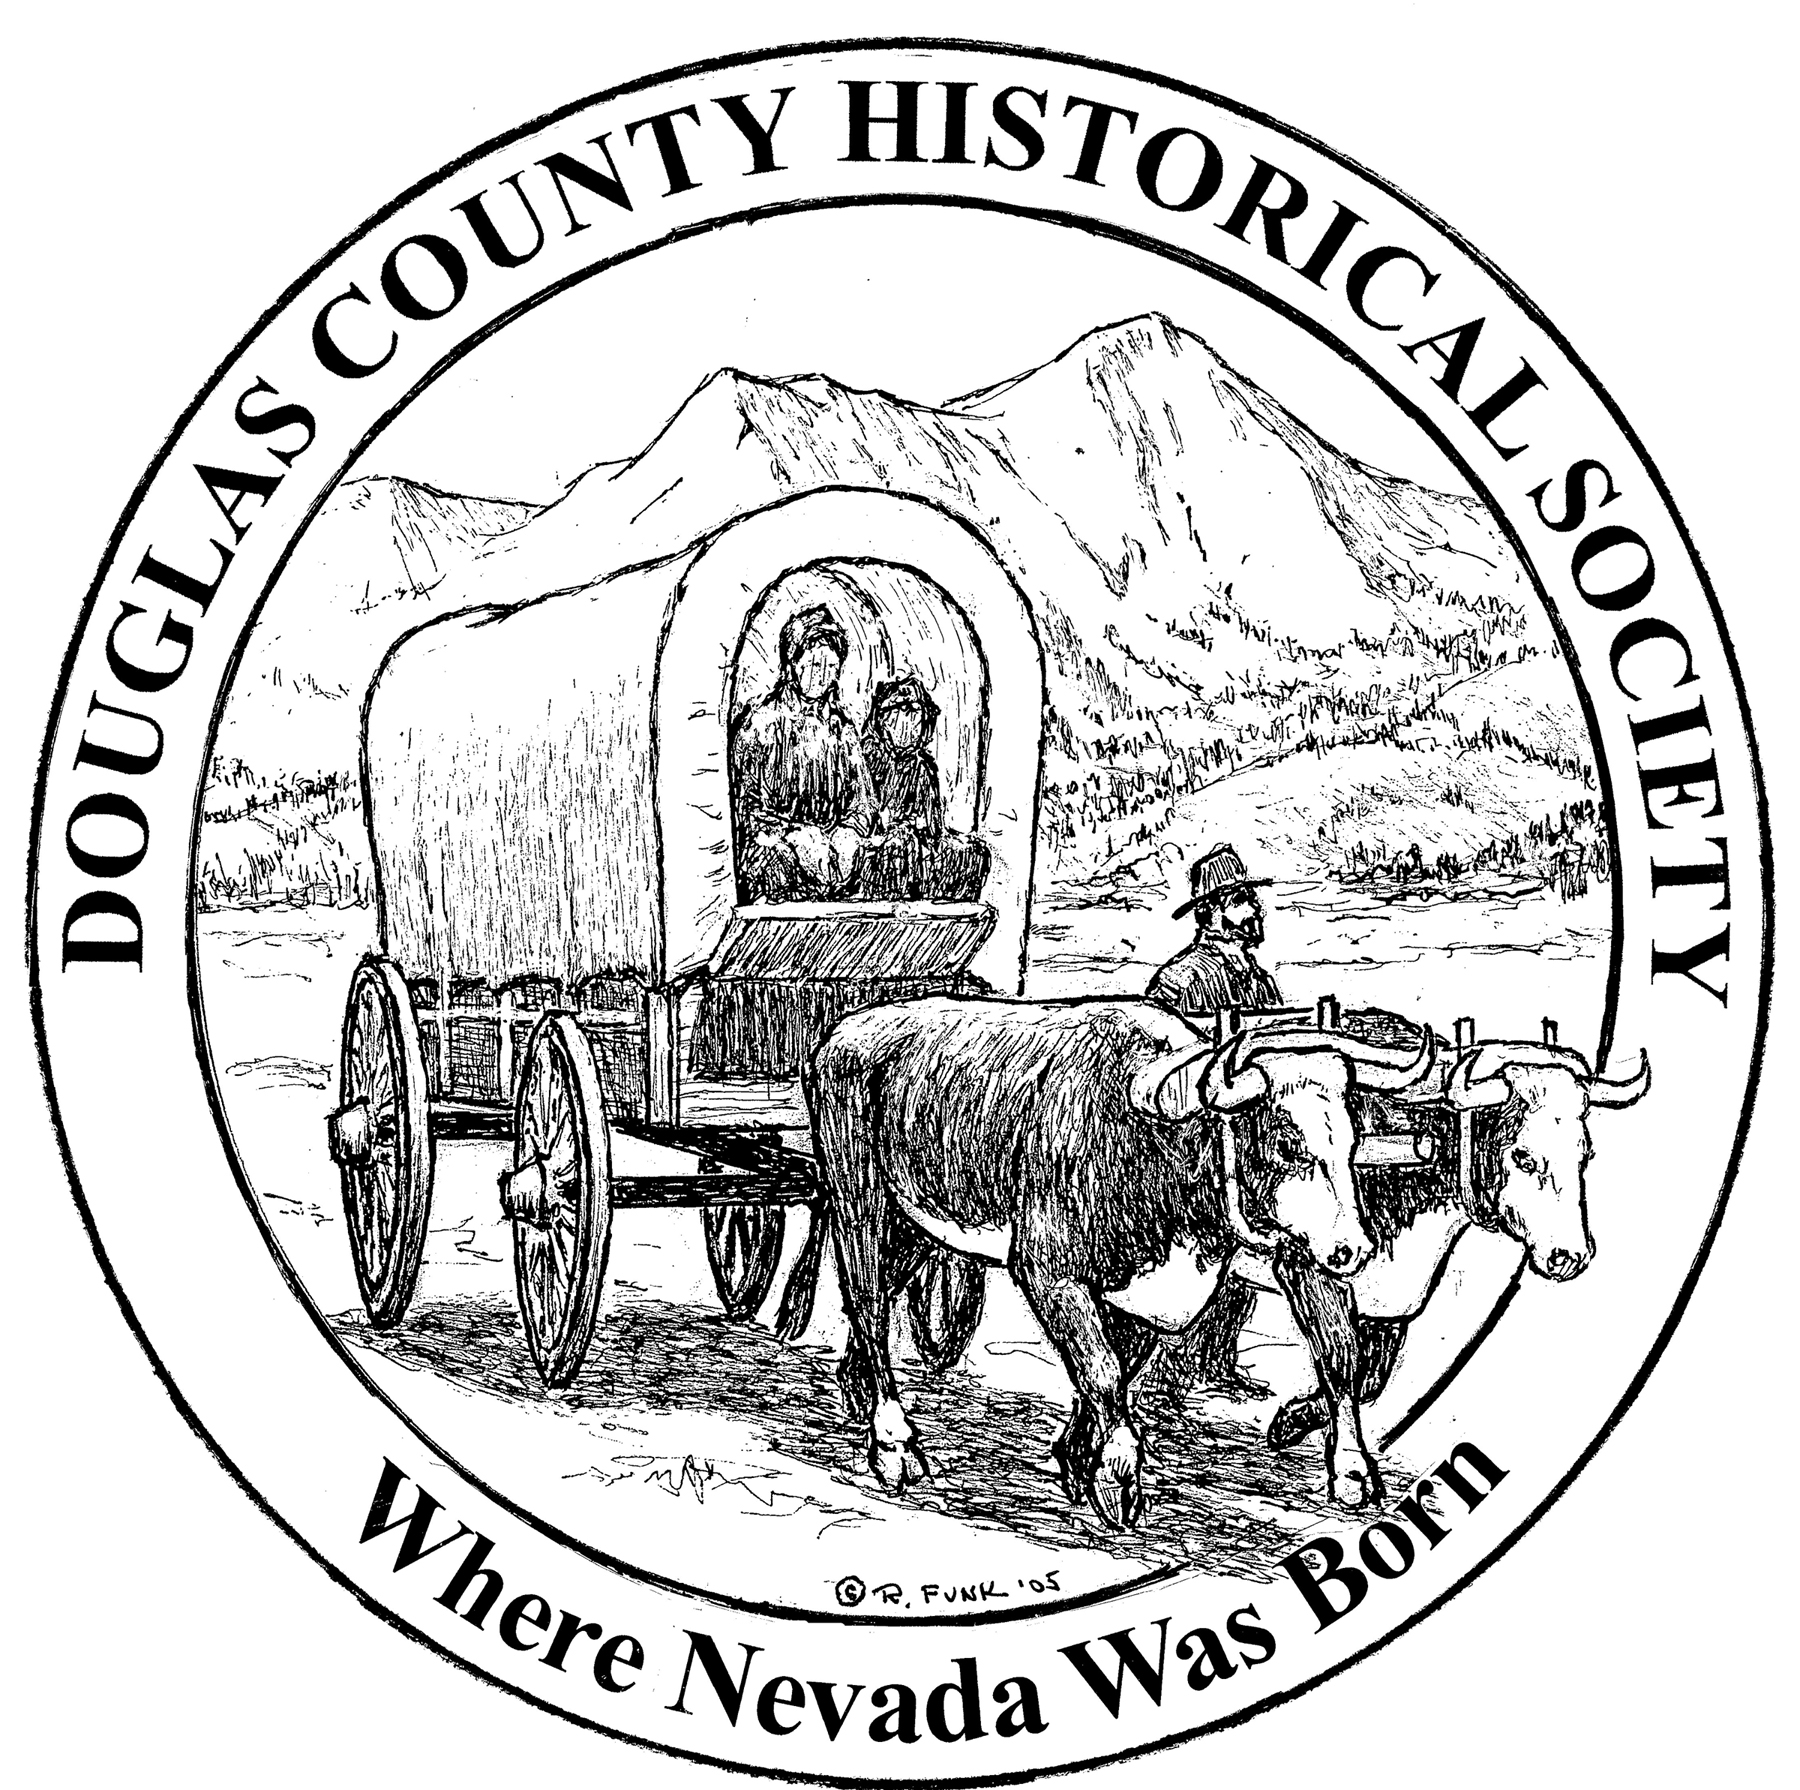 Douglas County Historical Society - 1477 US Highway 395 North775-782-2555